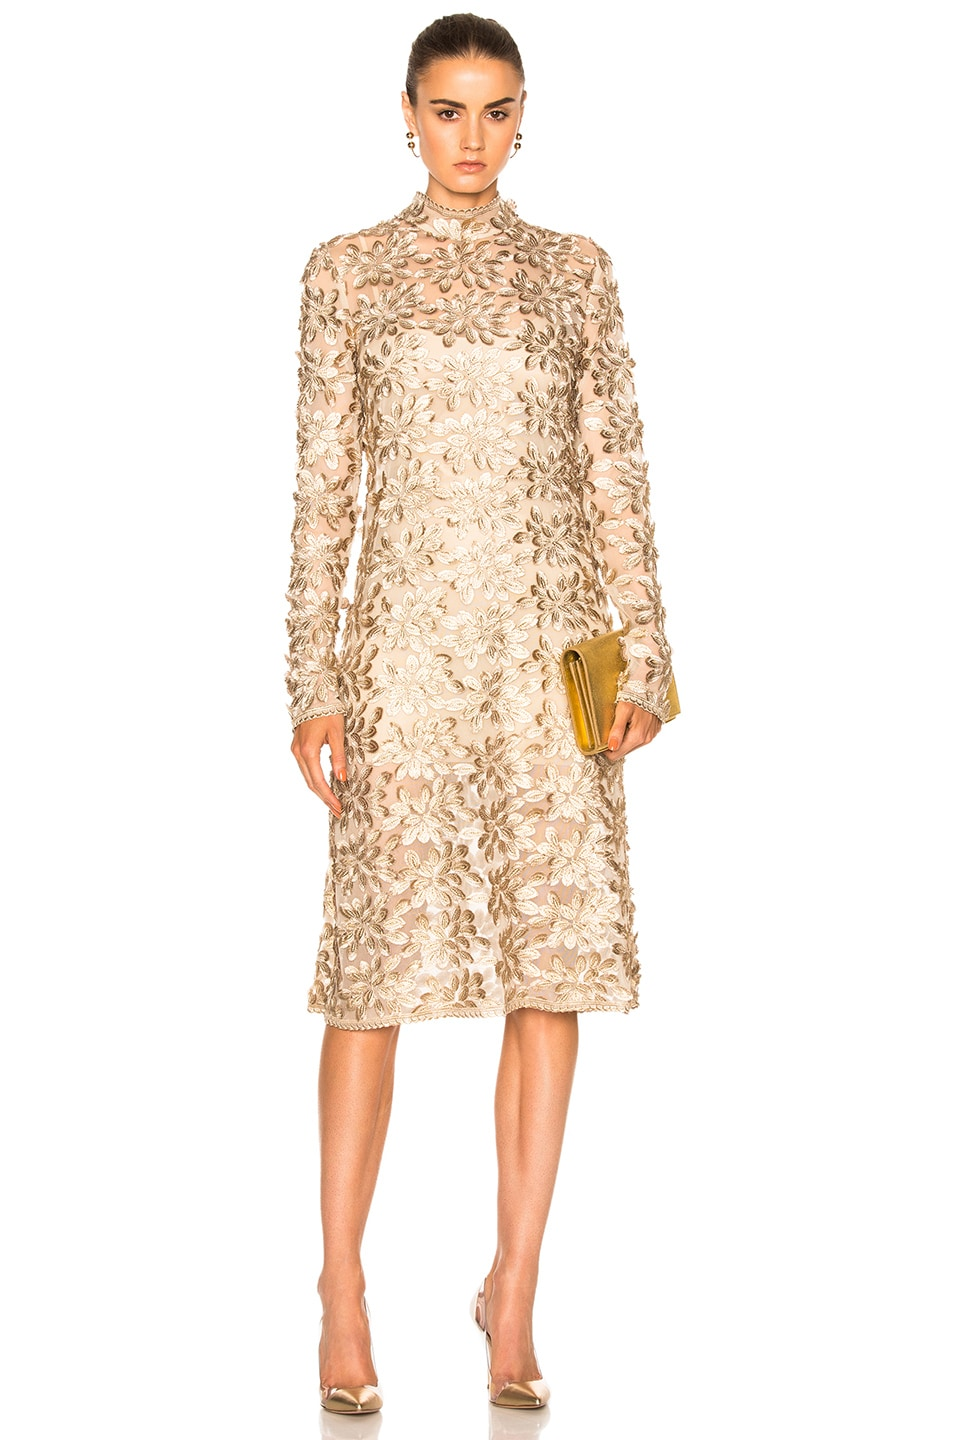 Kate Sylvester Pola Midi Dress in metallics